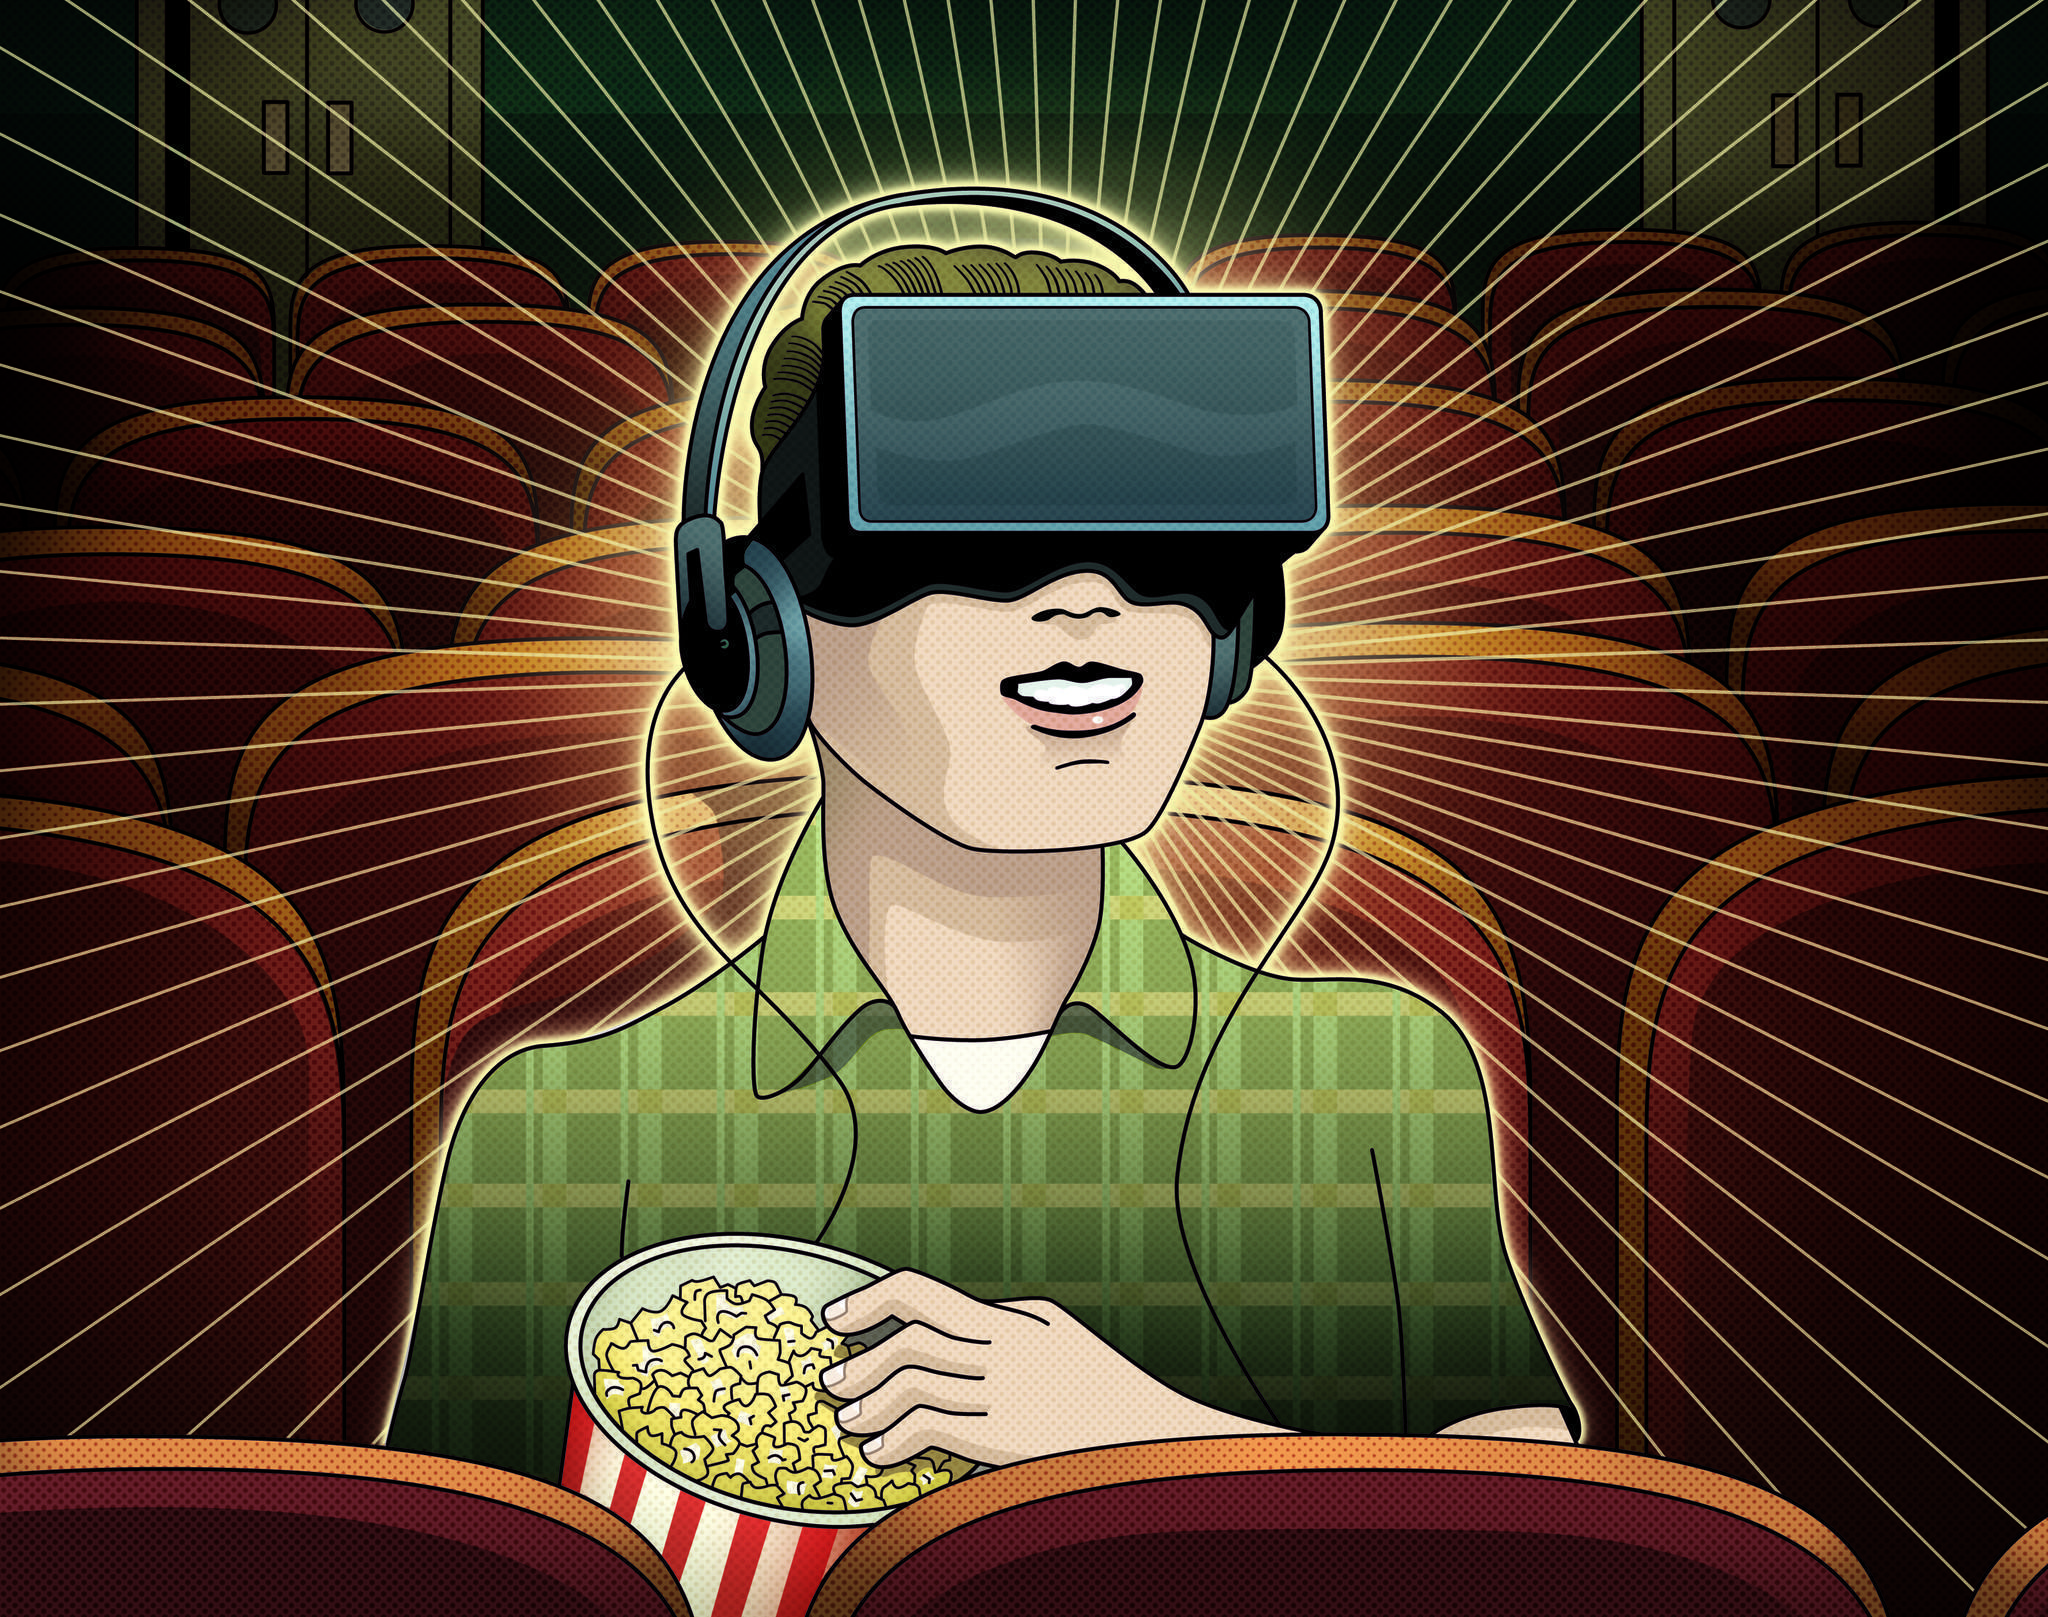 virtual reality in movies